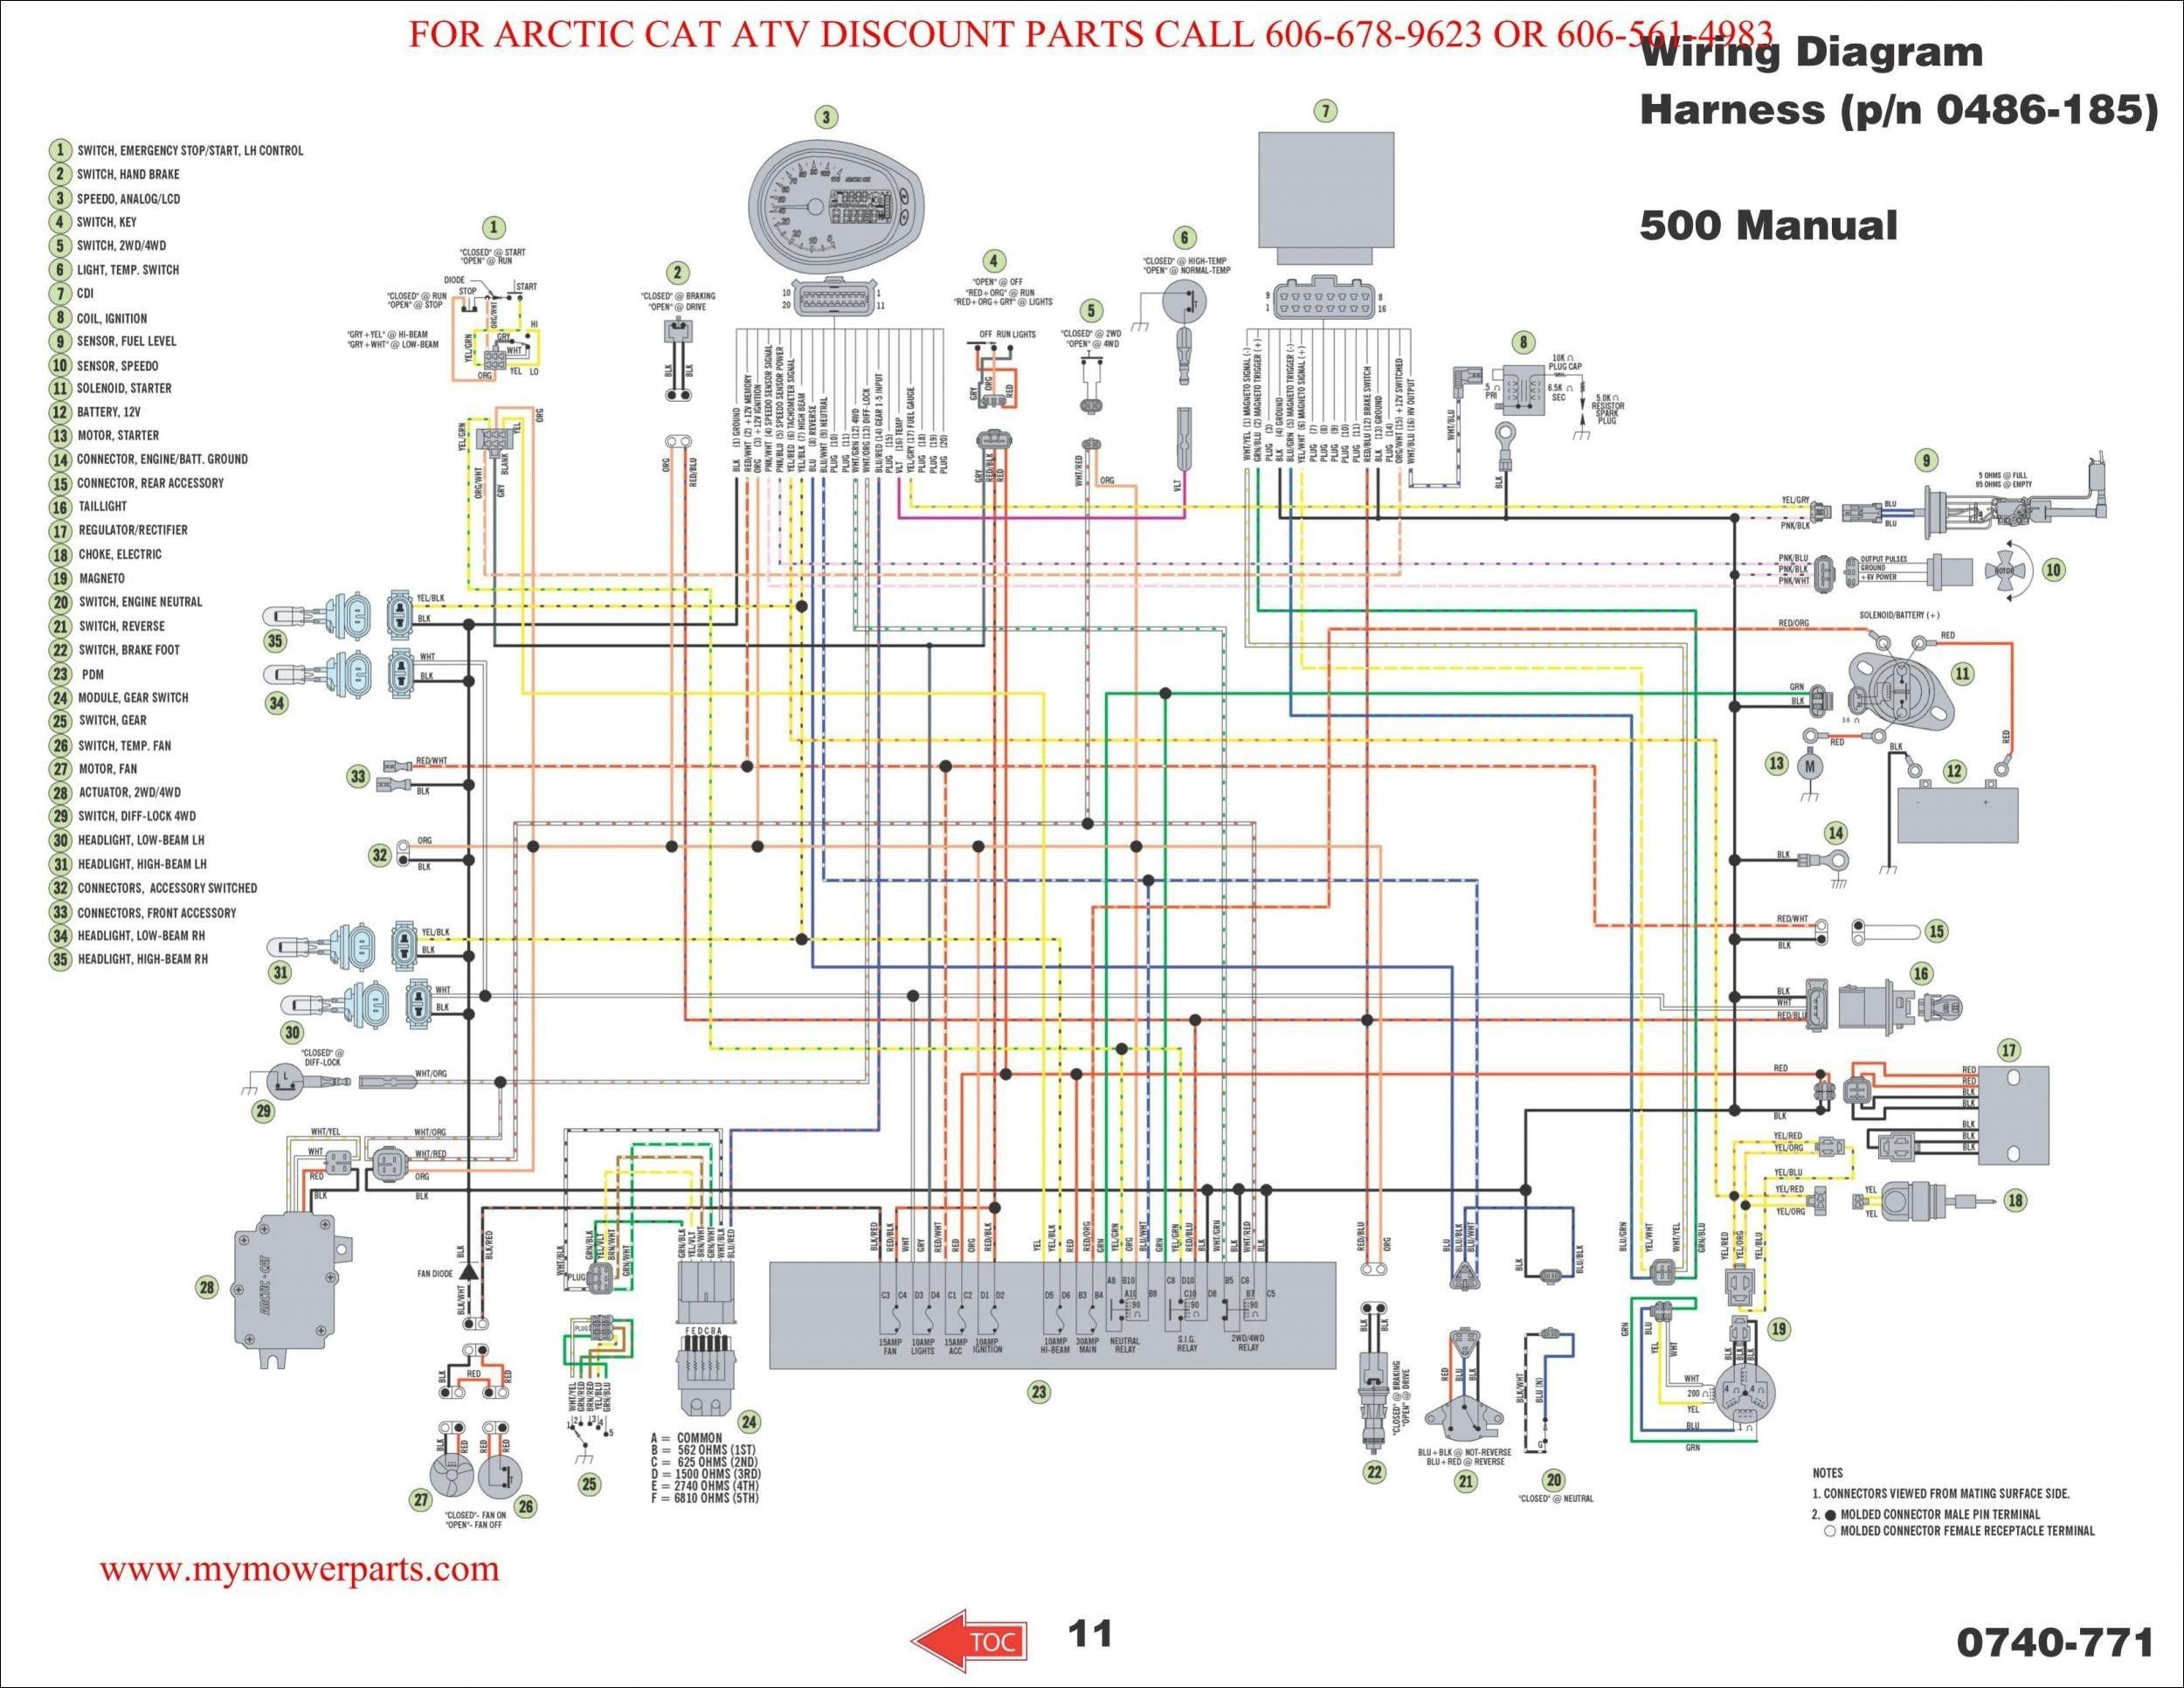 [QMVU_8575]  New Ac Ace Wiring Diagram #diagram #diagramtemplate #diagramsample |  Electrica, Motores | Arctic Cat Jet Ski Wiring Diagrams |  | Pinterest